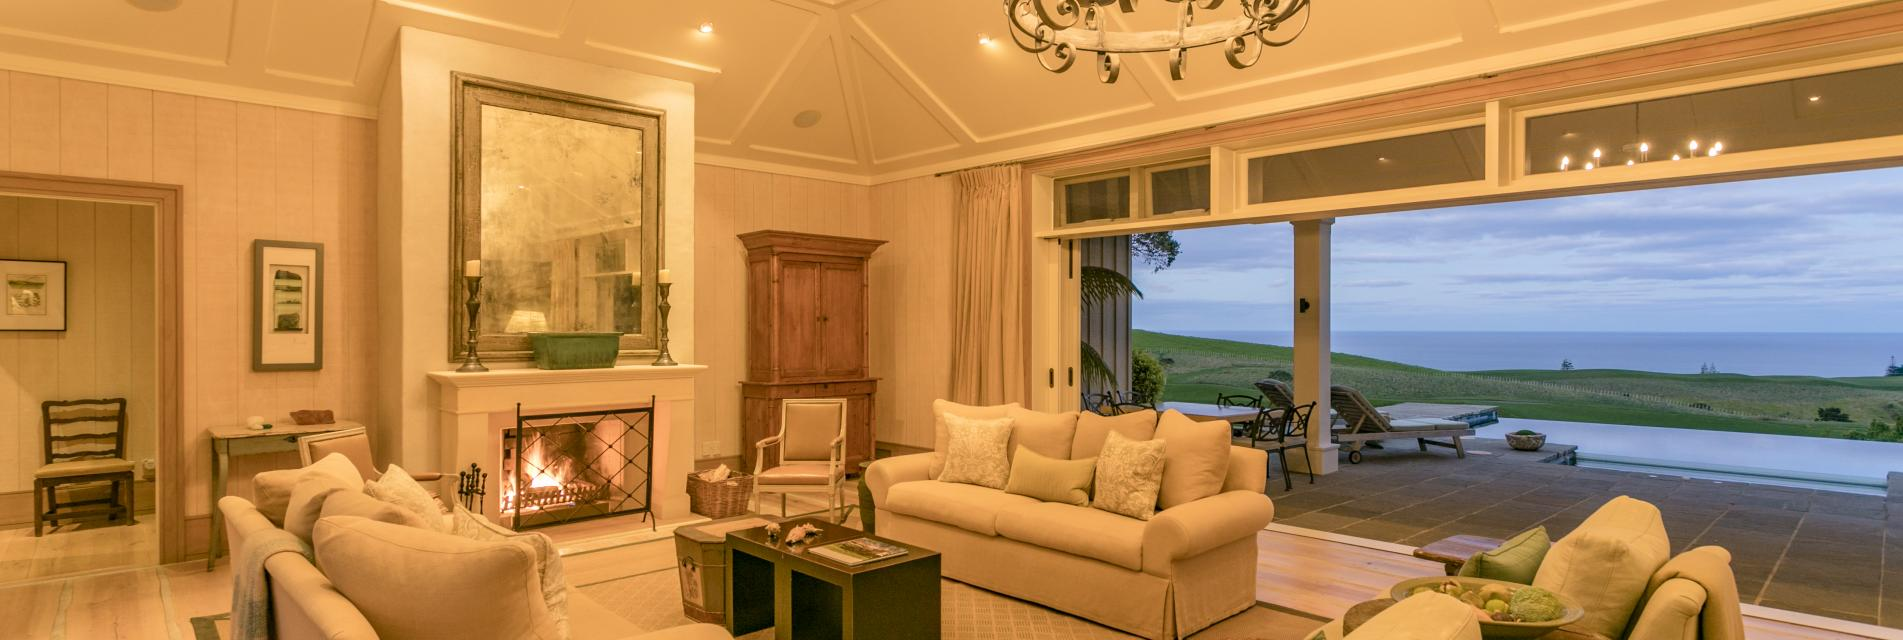 Kauri Cliffs Owners Cottage Main Lounge 2